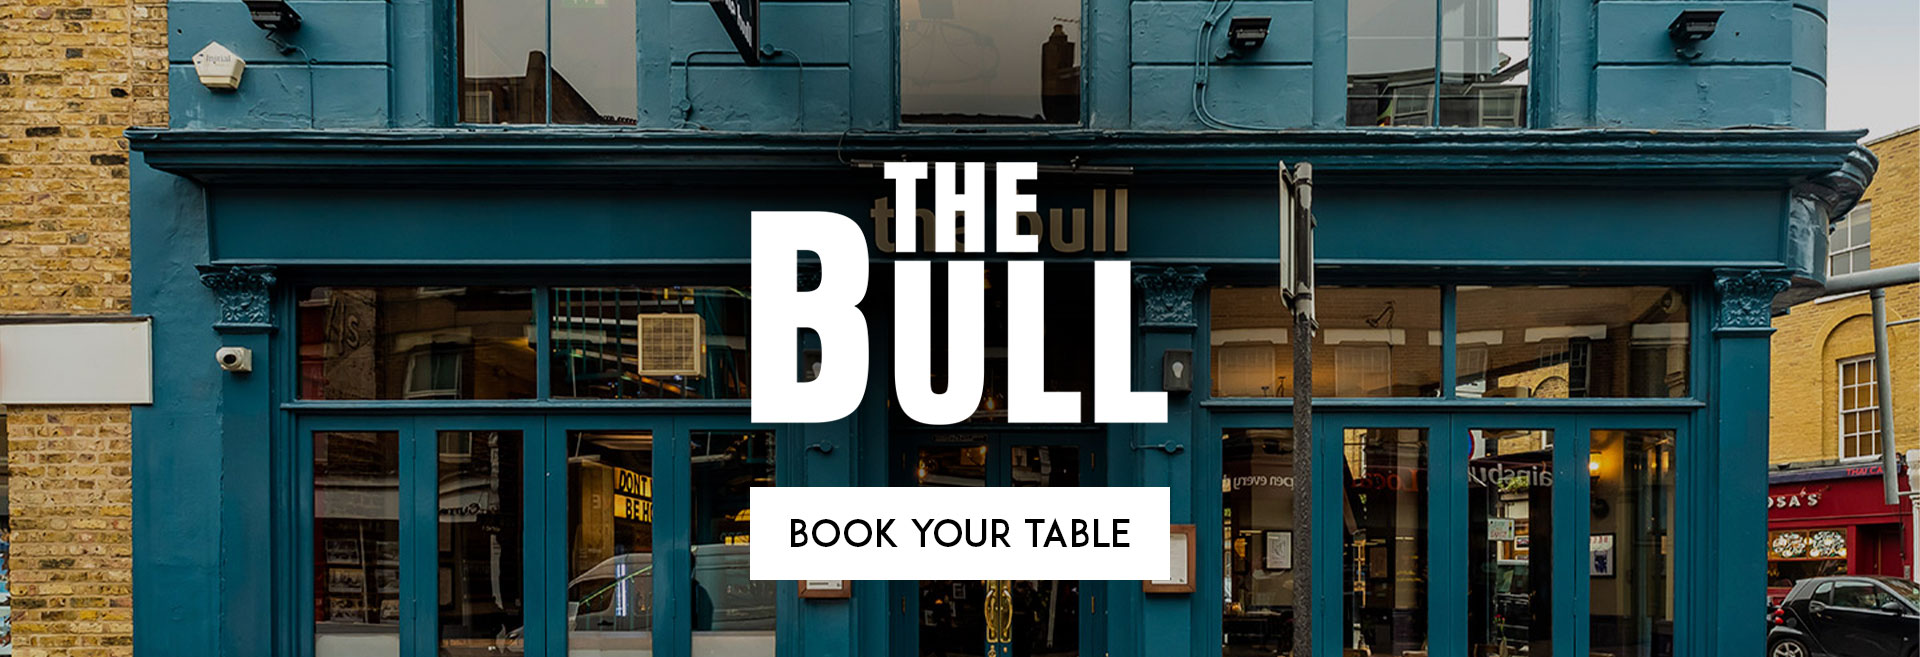 Book Your Table The Bull